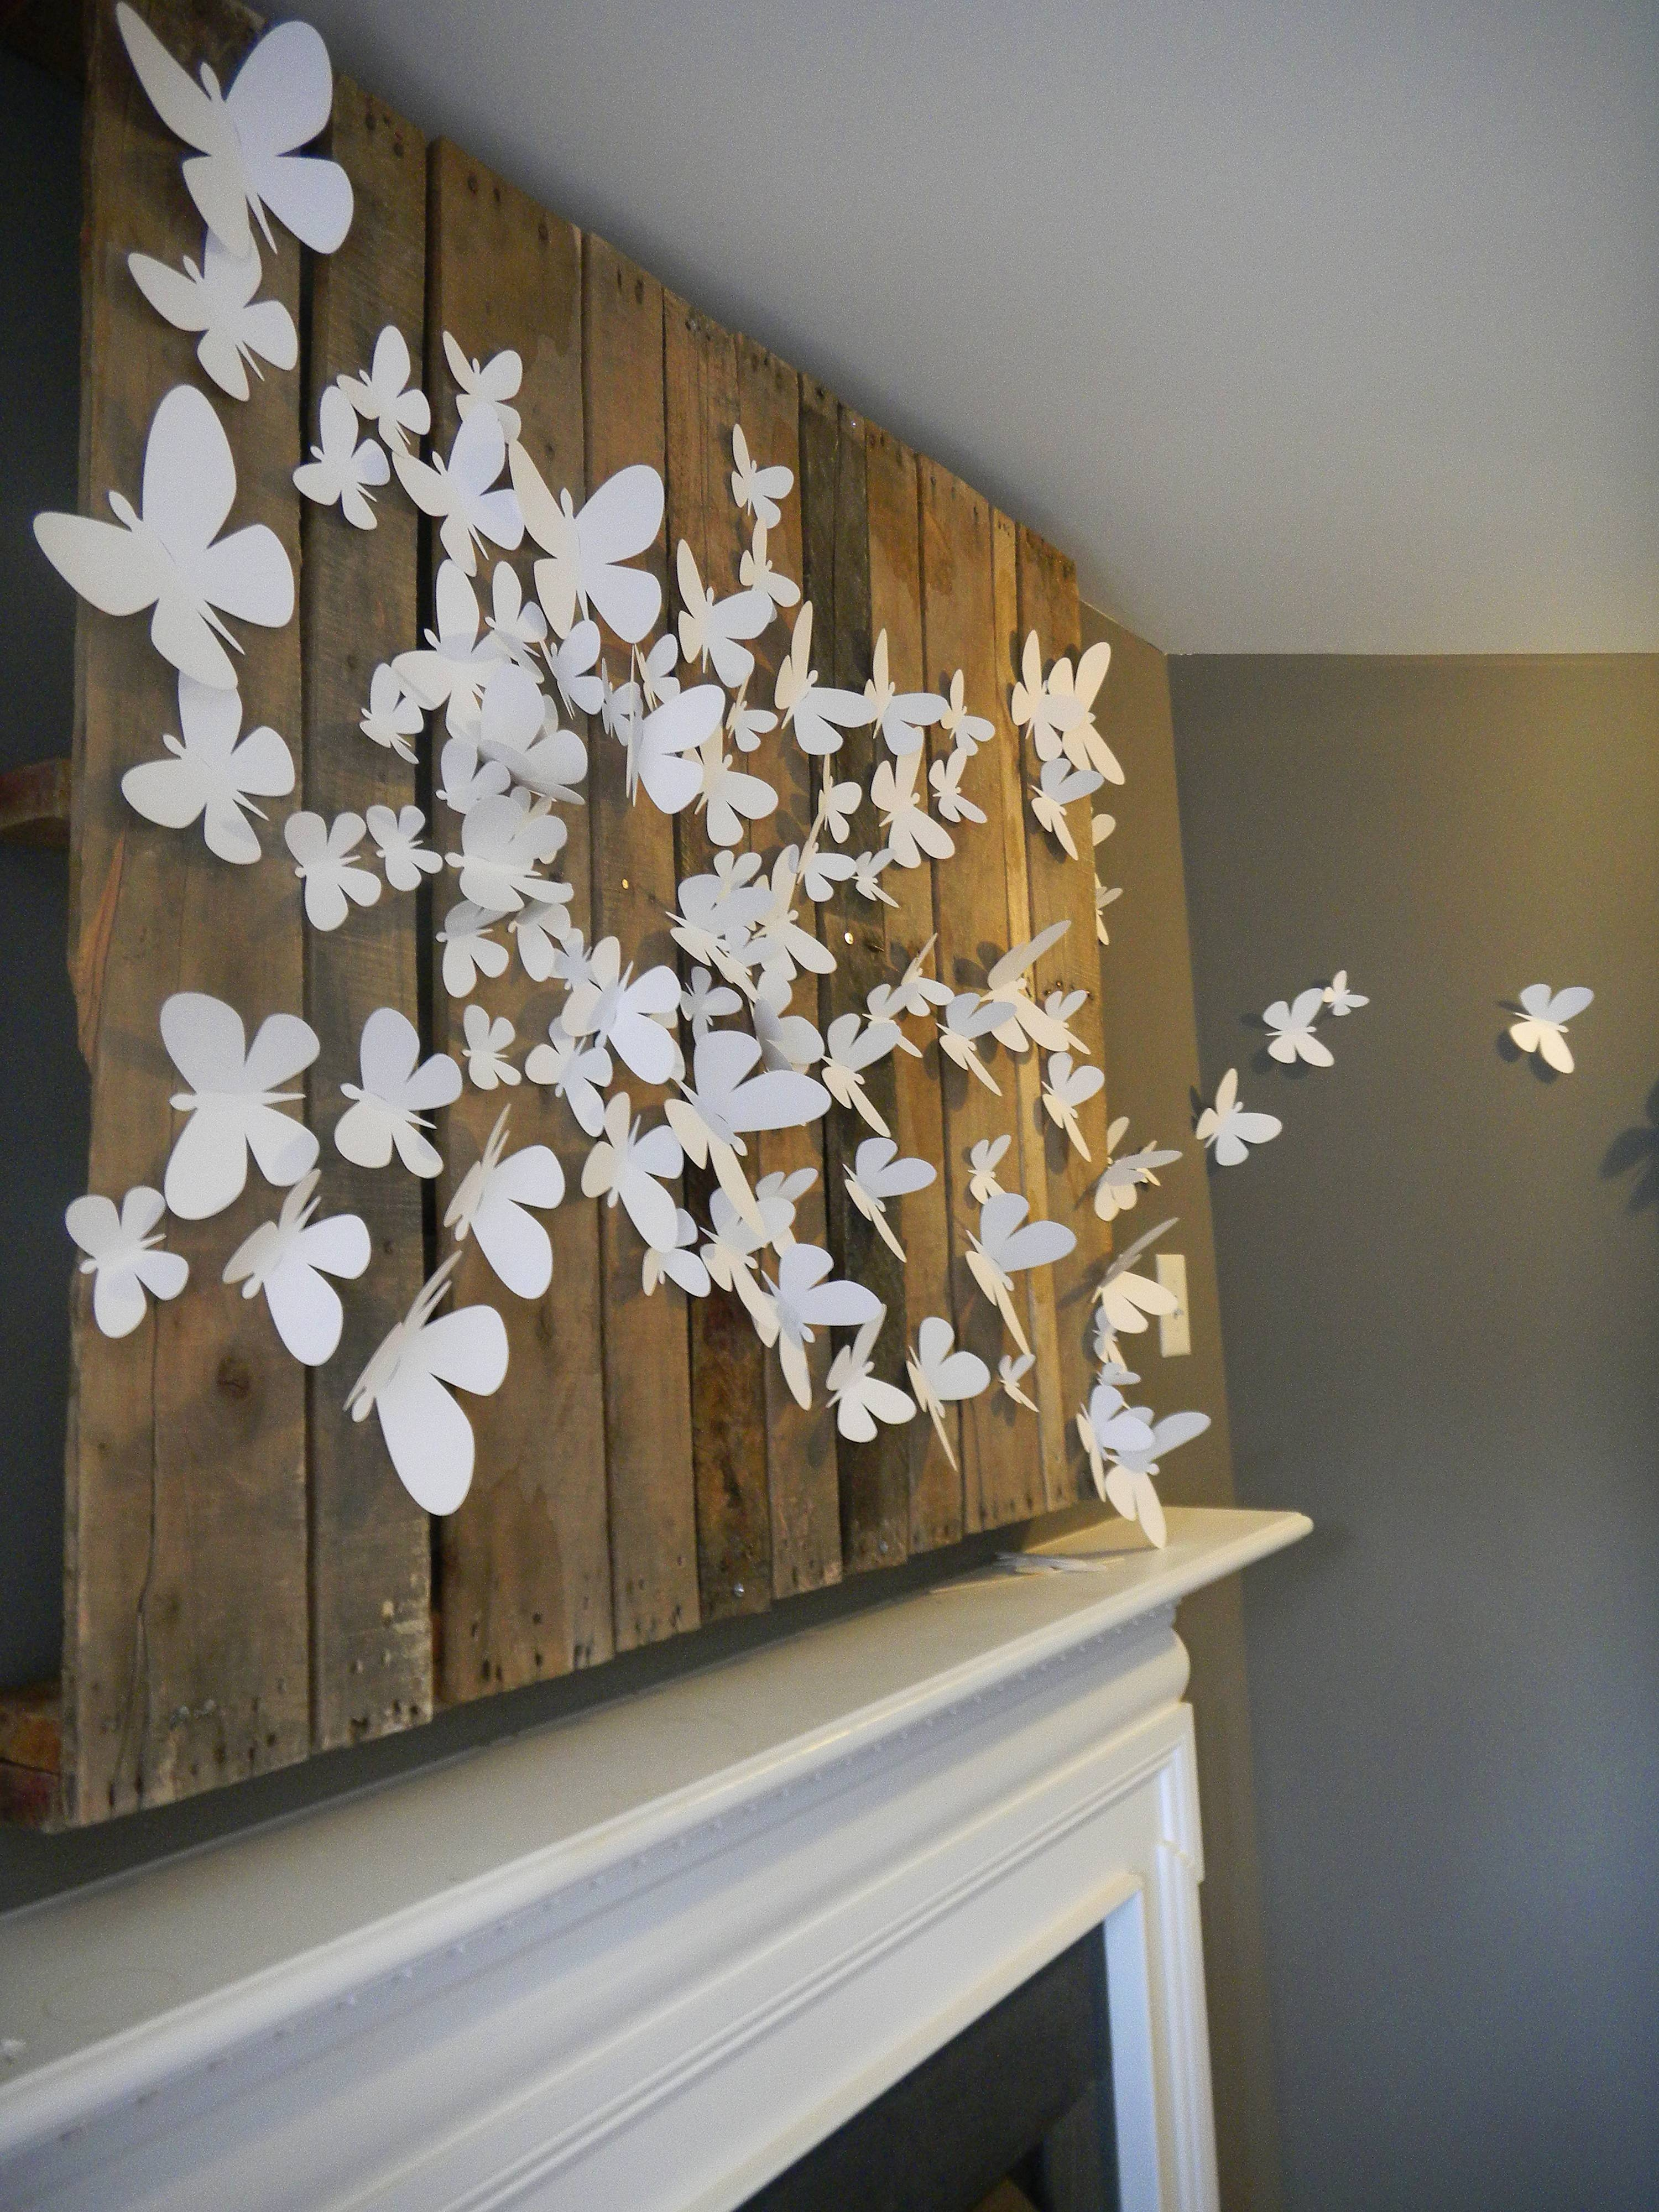 3D Butterfly Wall Art | Design Fabulous Inside Most Recent 3D Wall Art For Bedrooms (View 3 of 20)